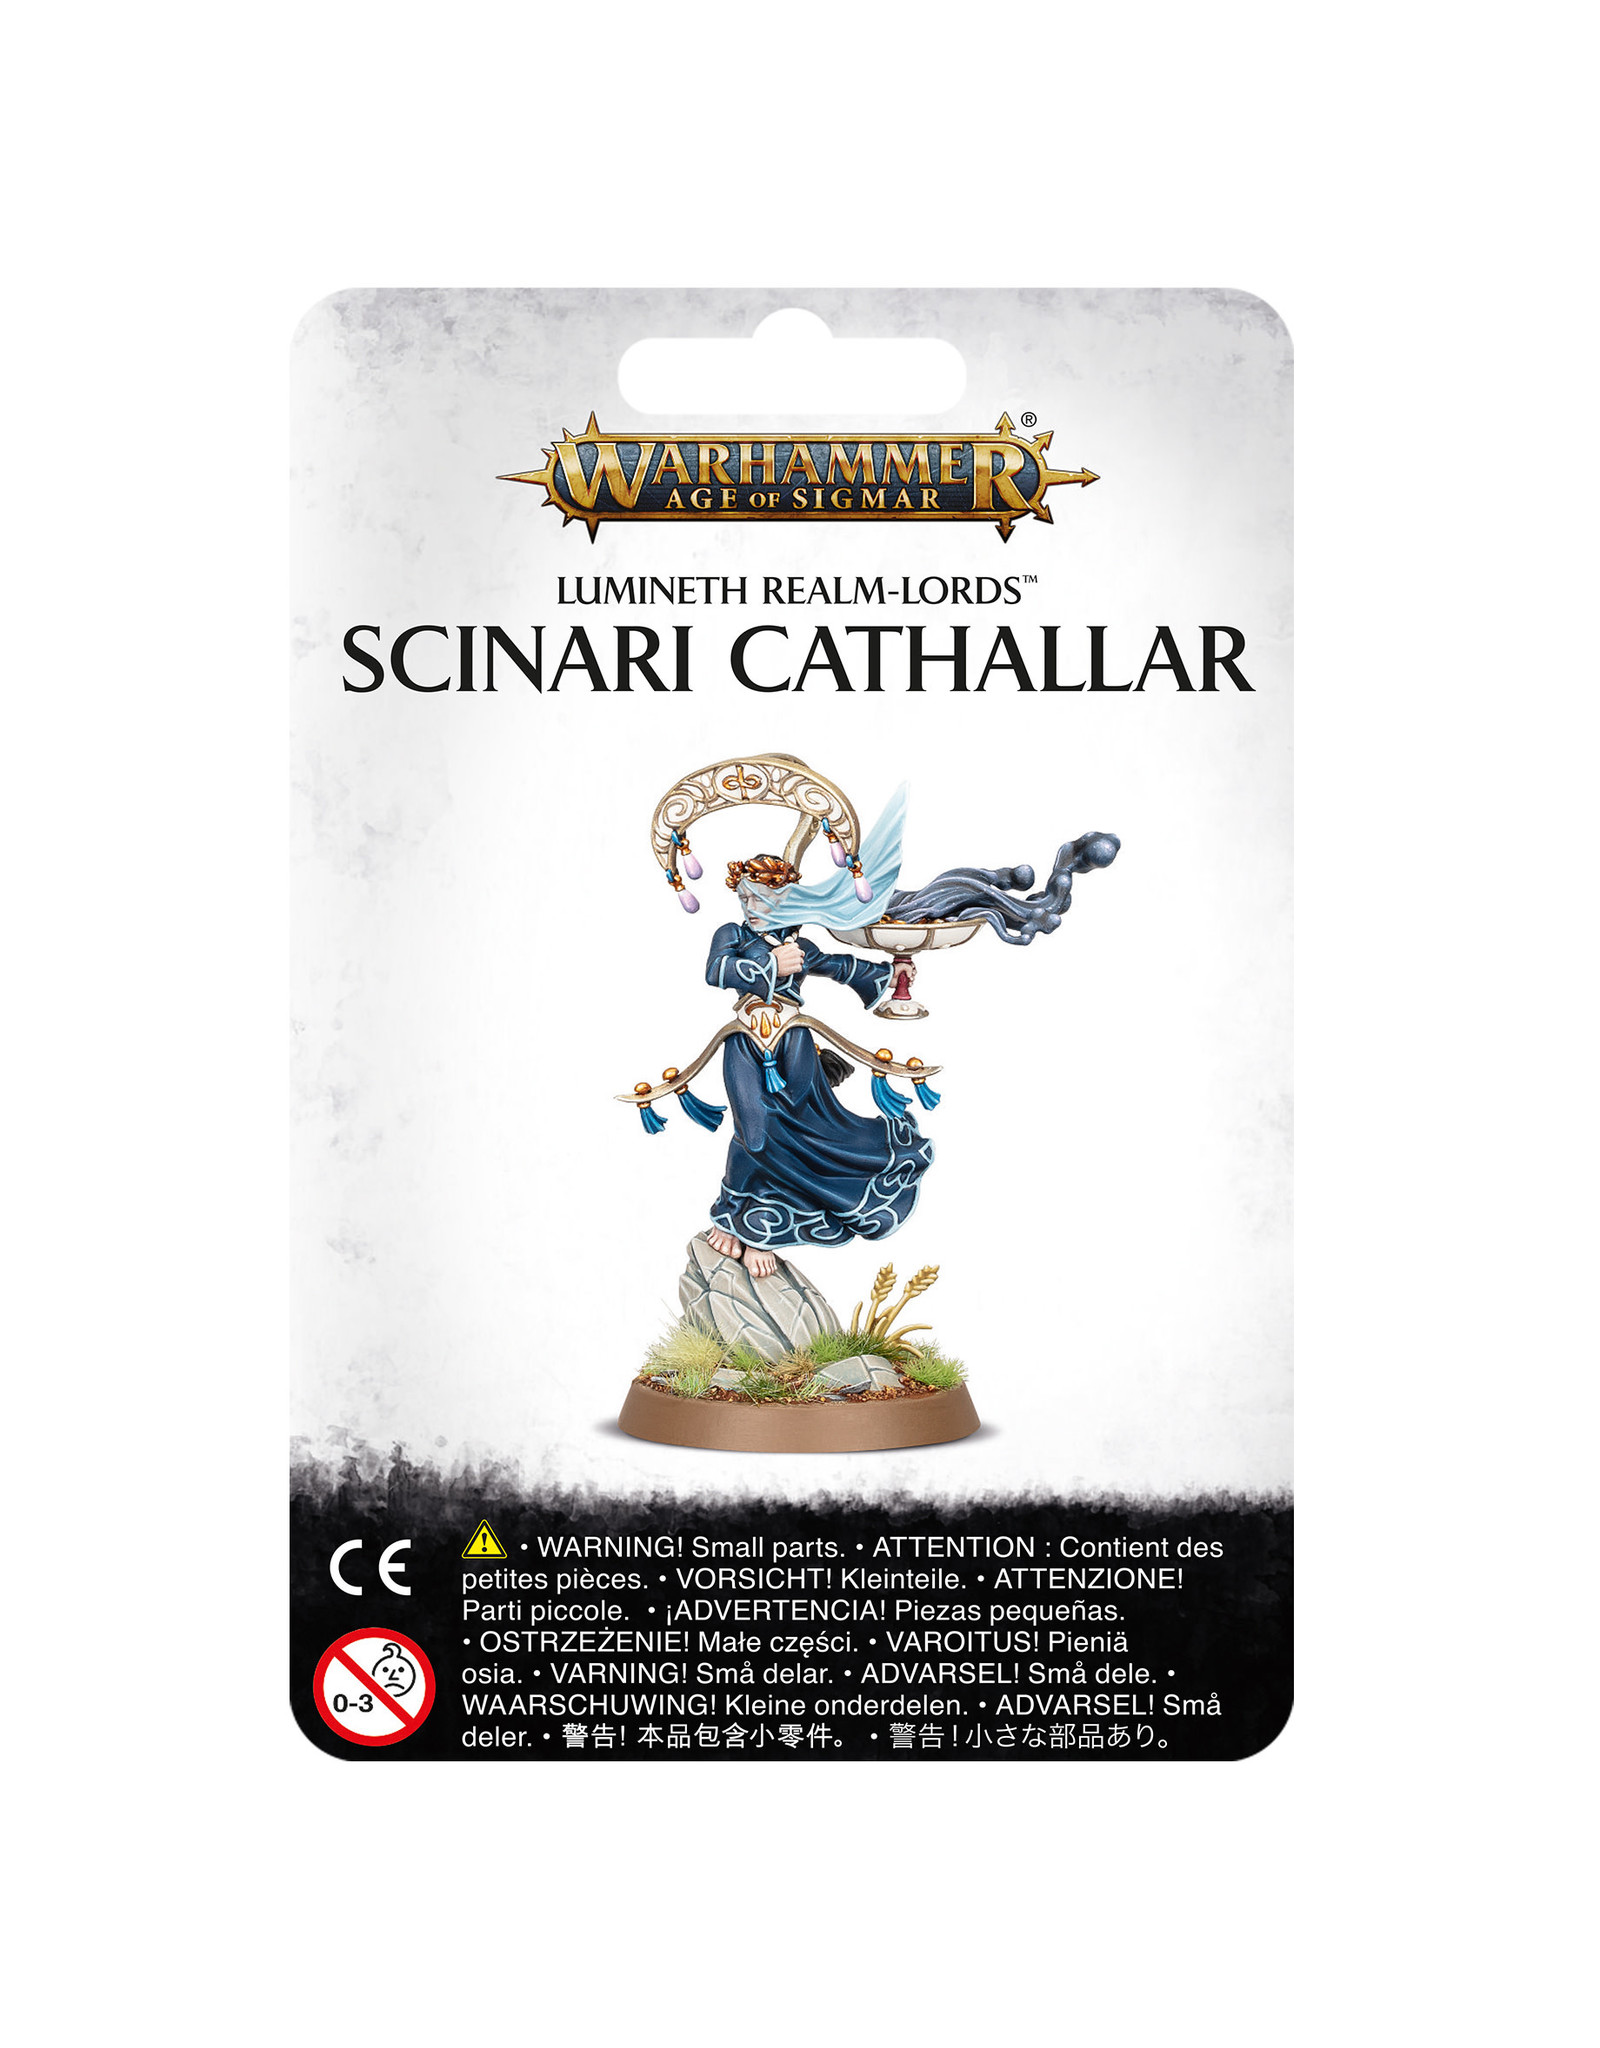 Age of Sigmar LUMINETH REALM-LORDS: SCINARI CATHALLAR